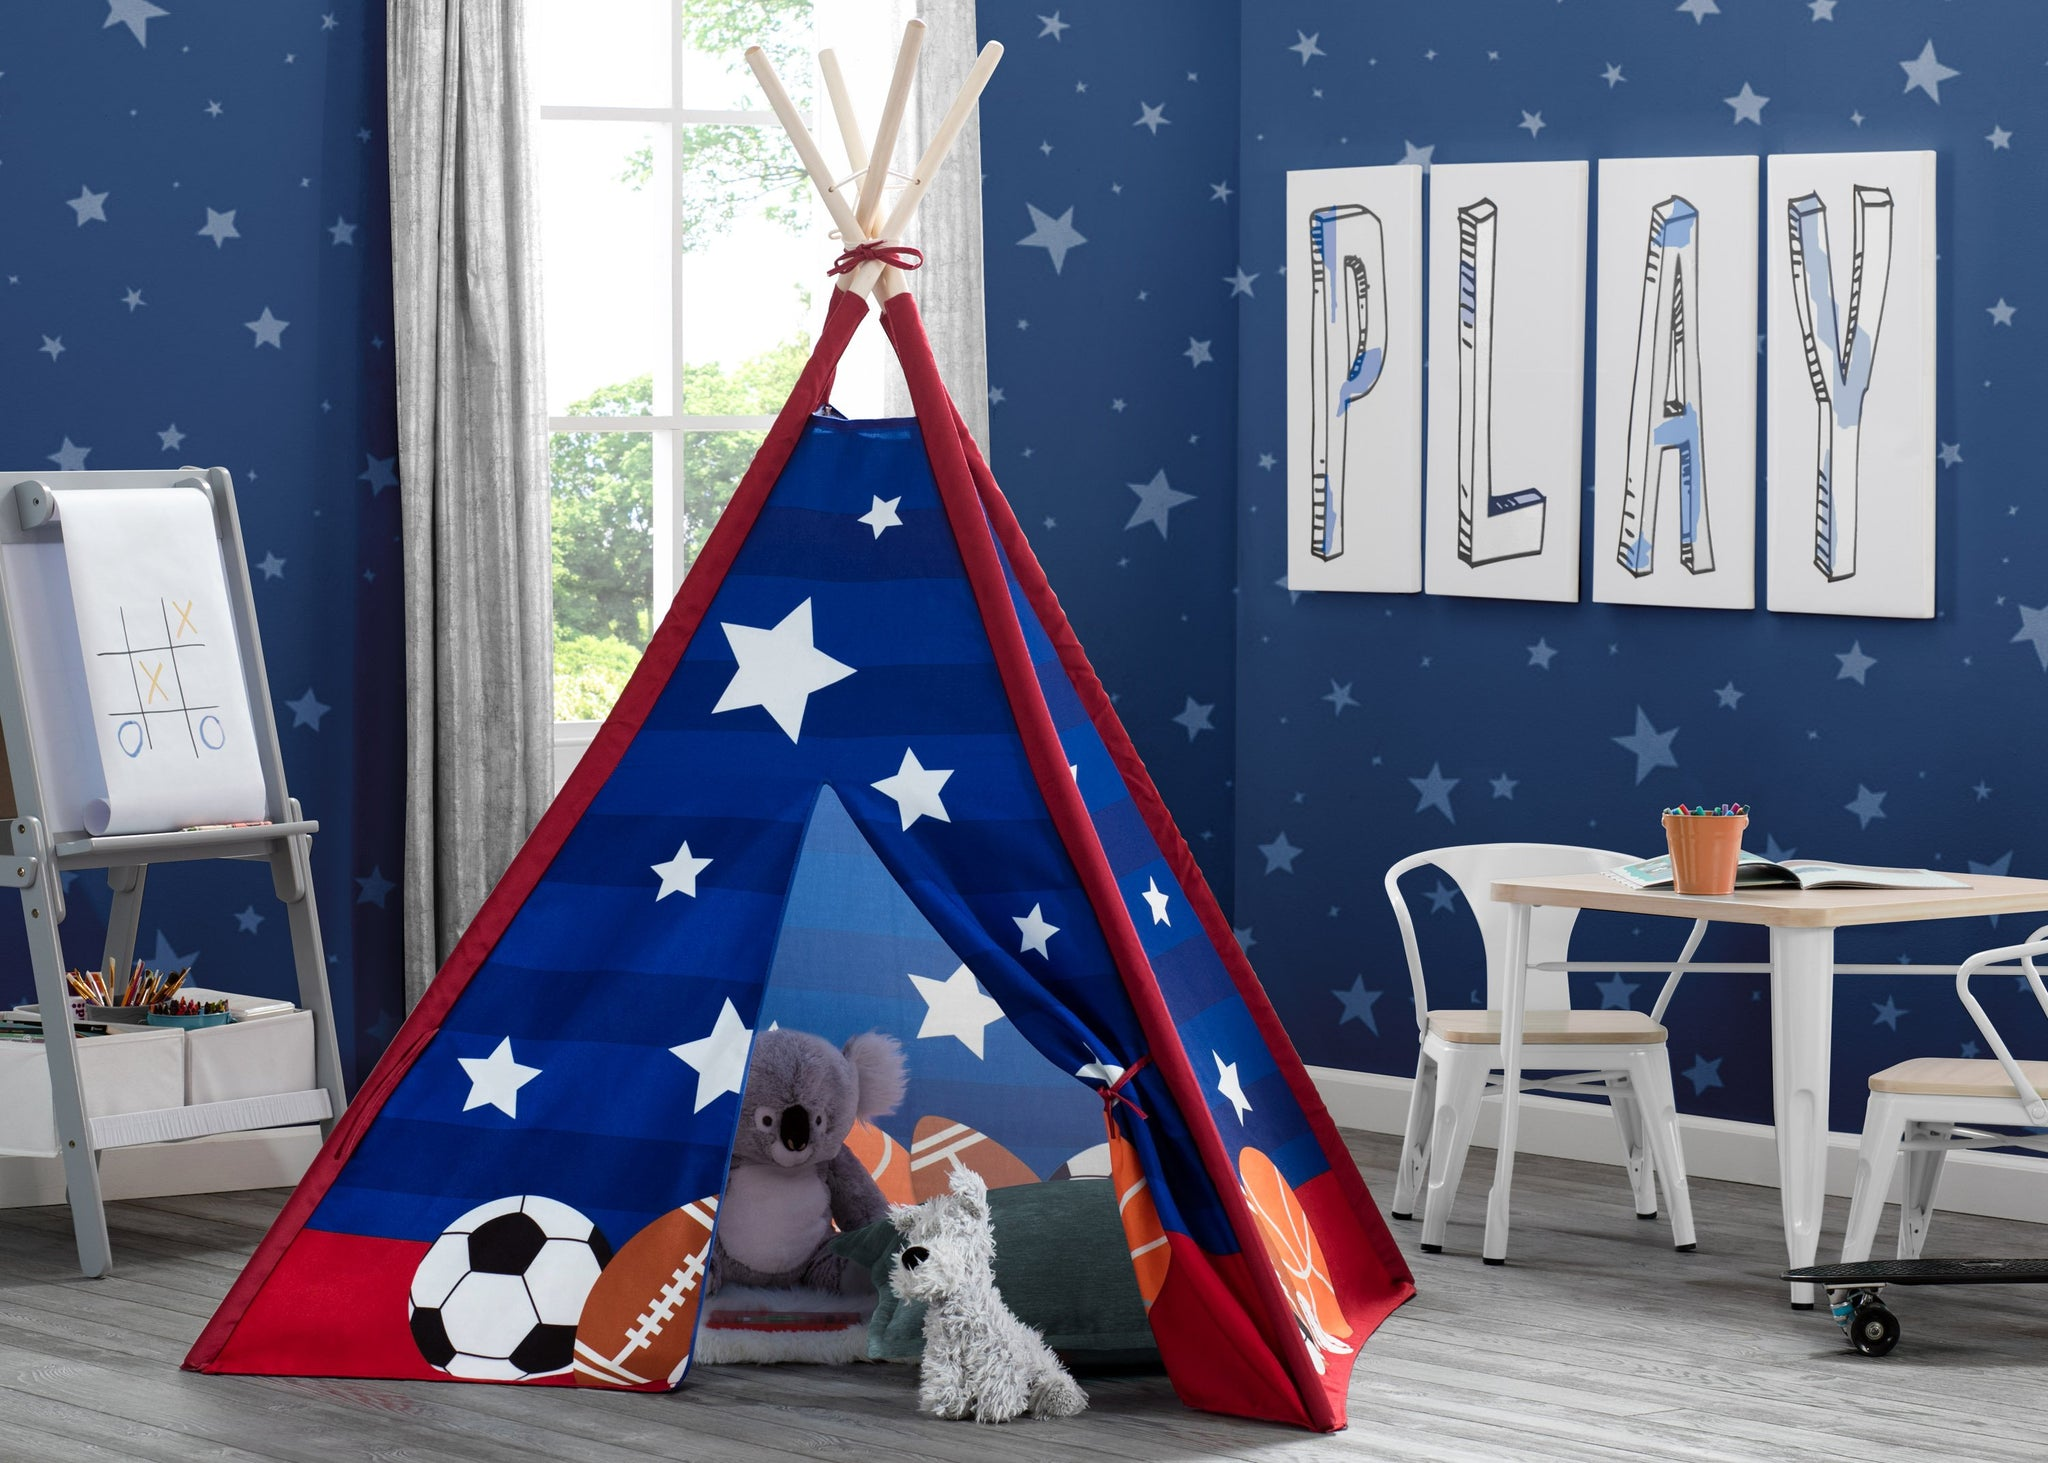 Delta Children All-Star Sports (999) Teepee Play Tent for Kids, Hangtag View